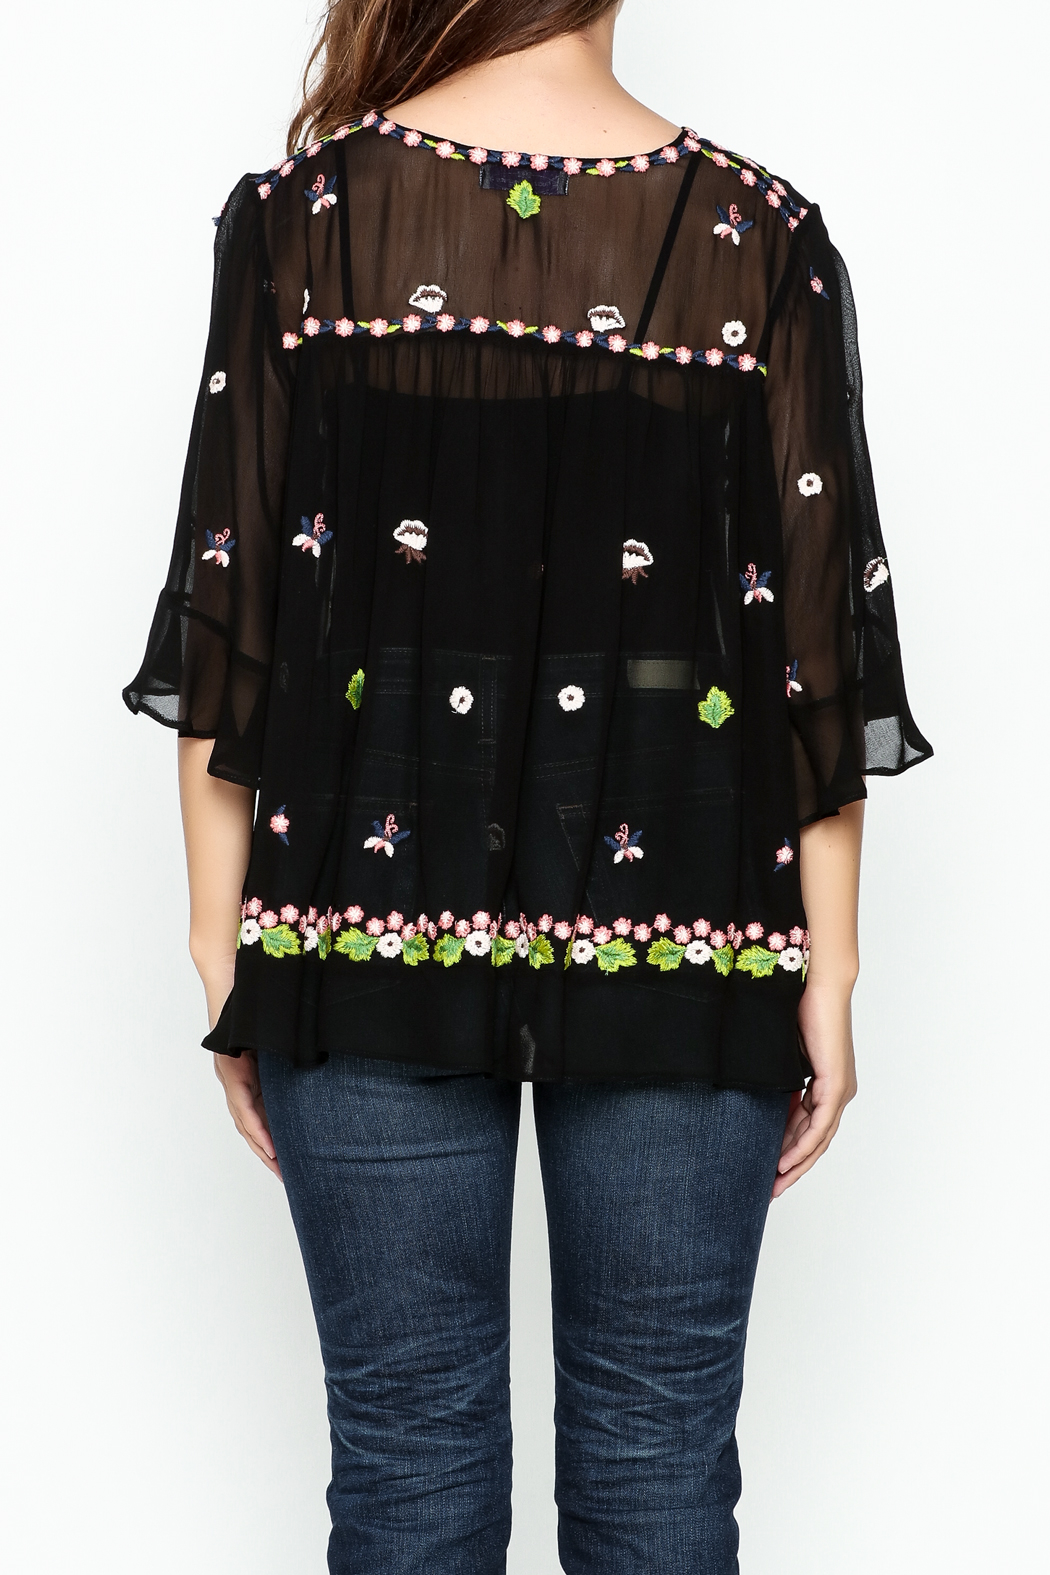 Muche et Muchette Sheer Flower Embroidered Top - Back Cropped Image